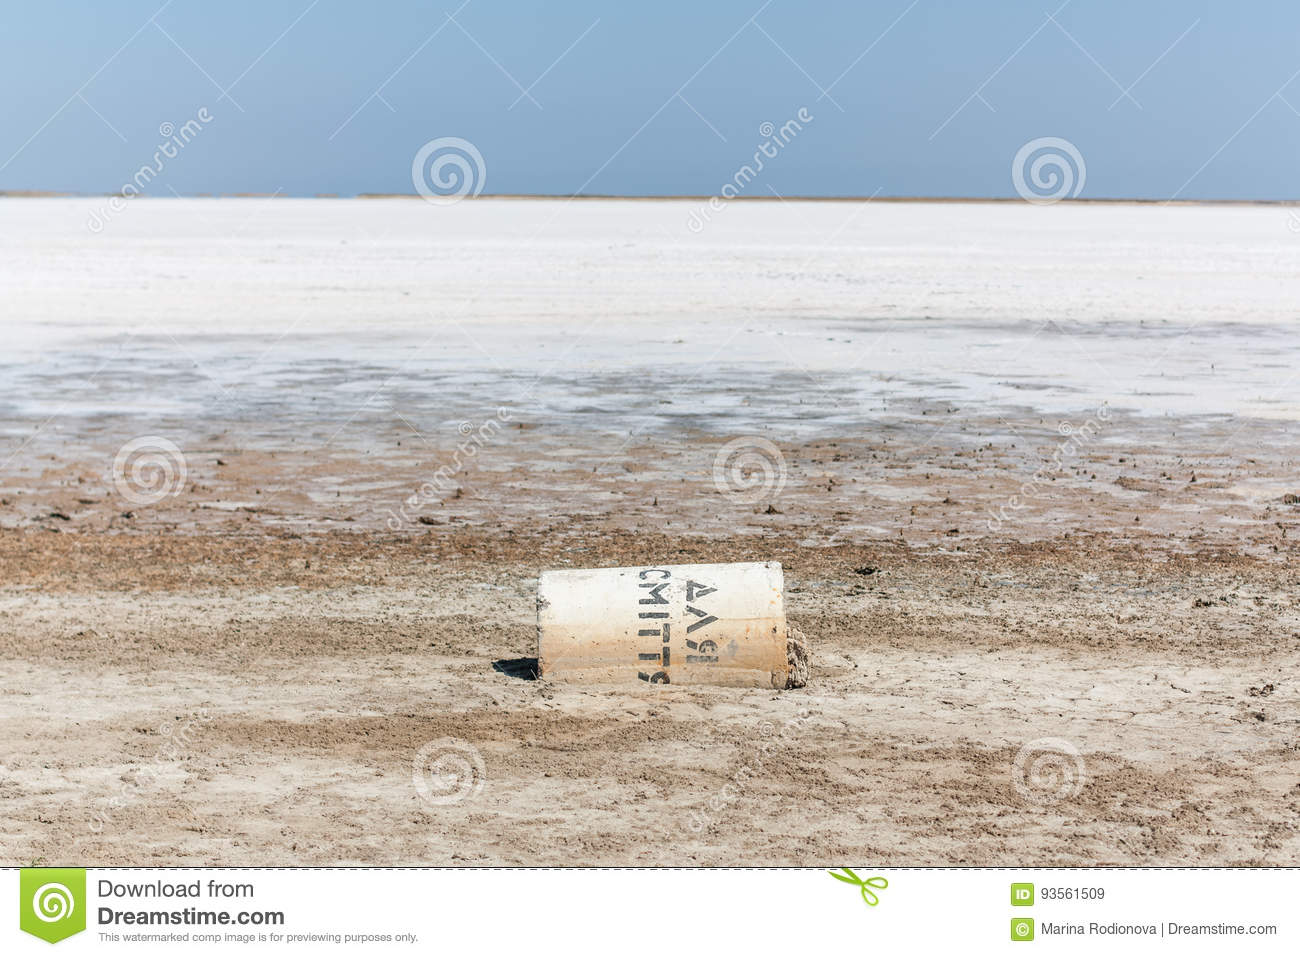 Dry salt lake with a fallen container